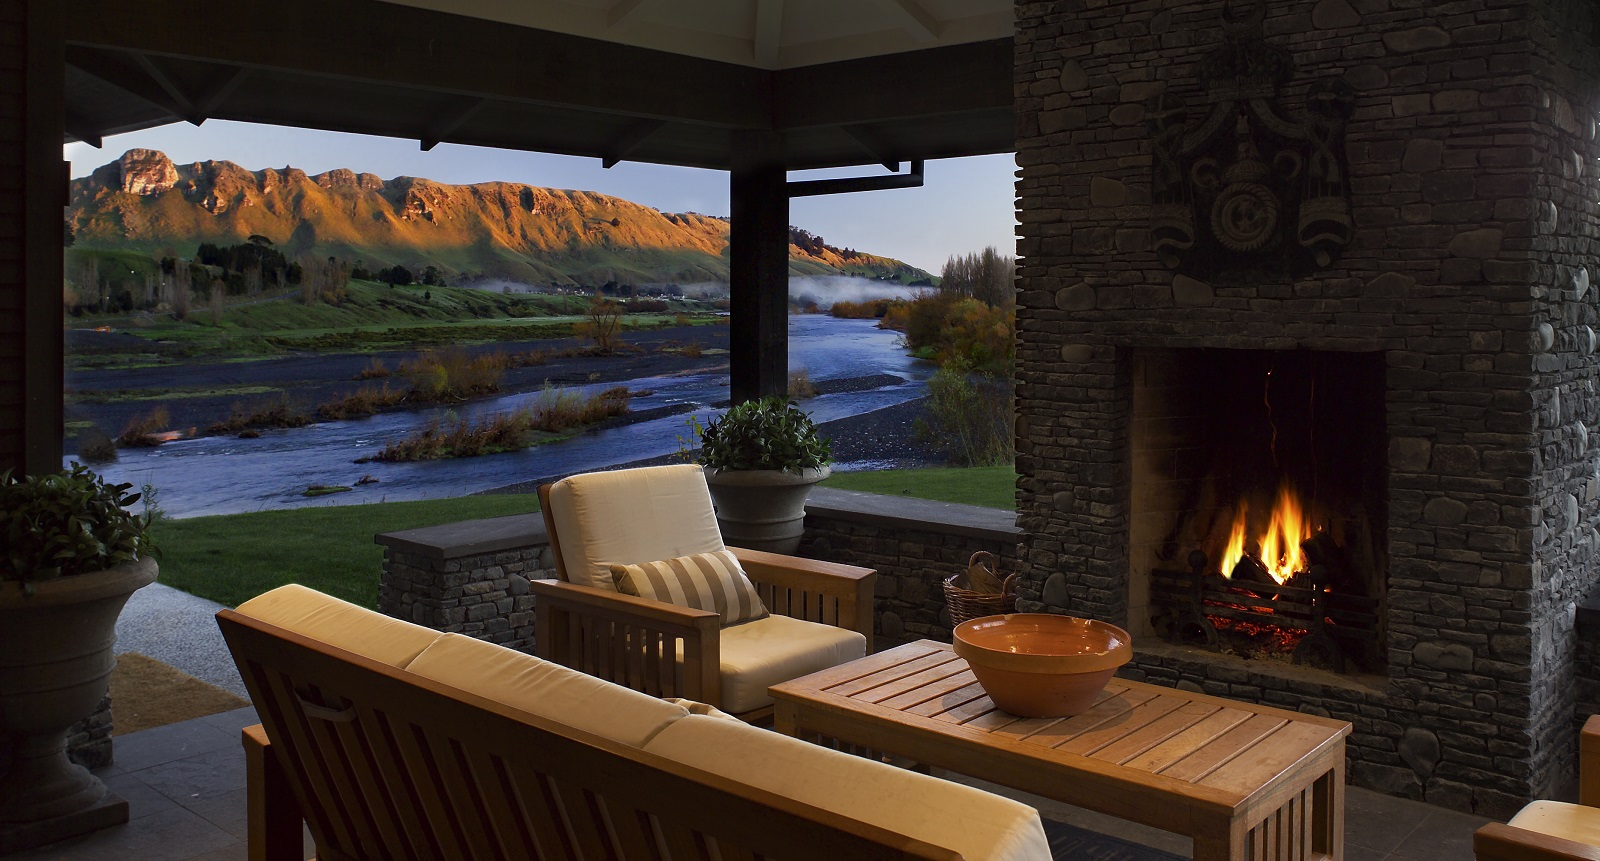 The fire place and interior of accommodation at Black Barn, Hawke's Bay.